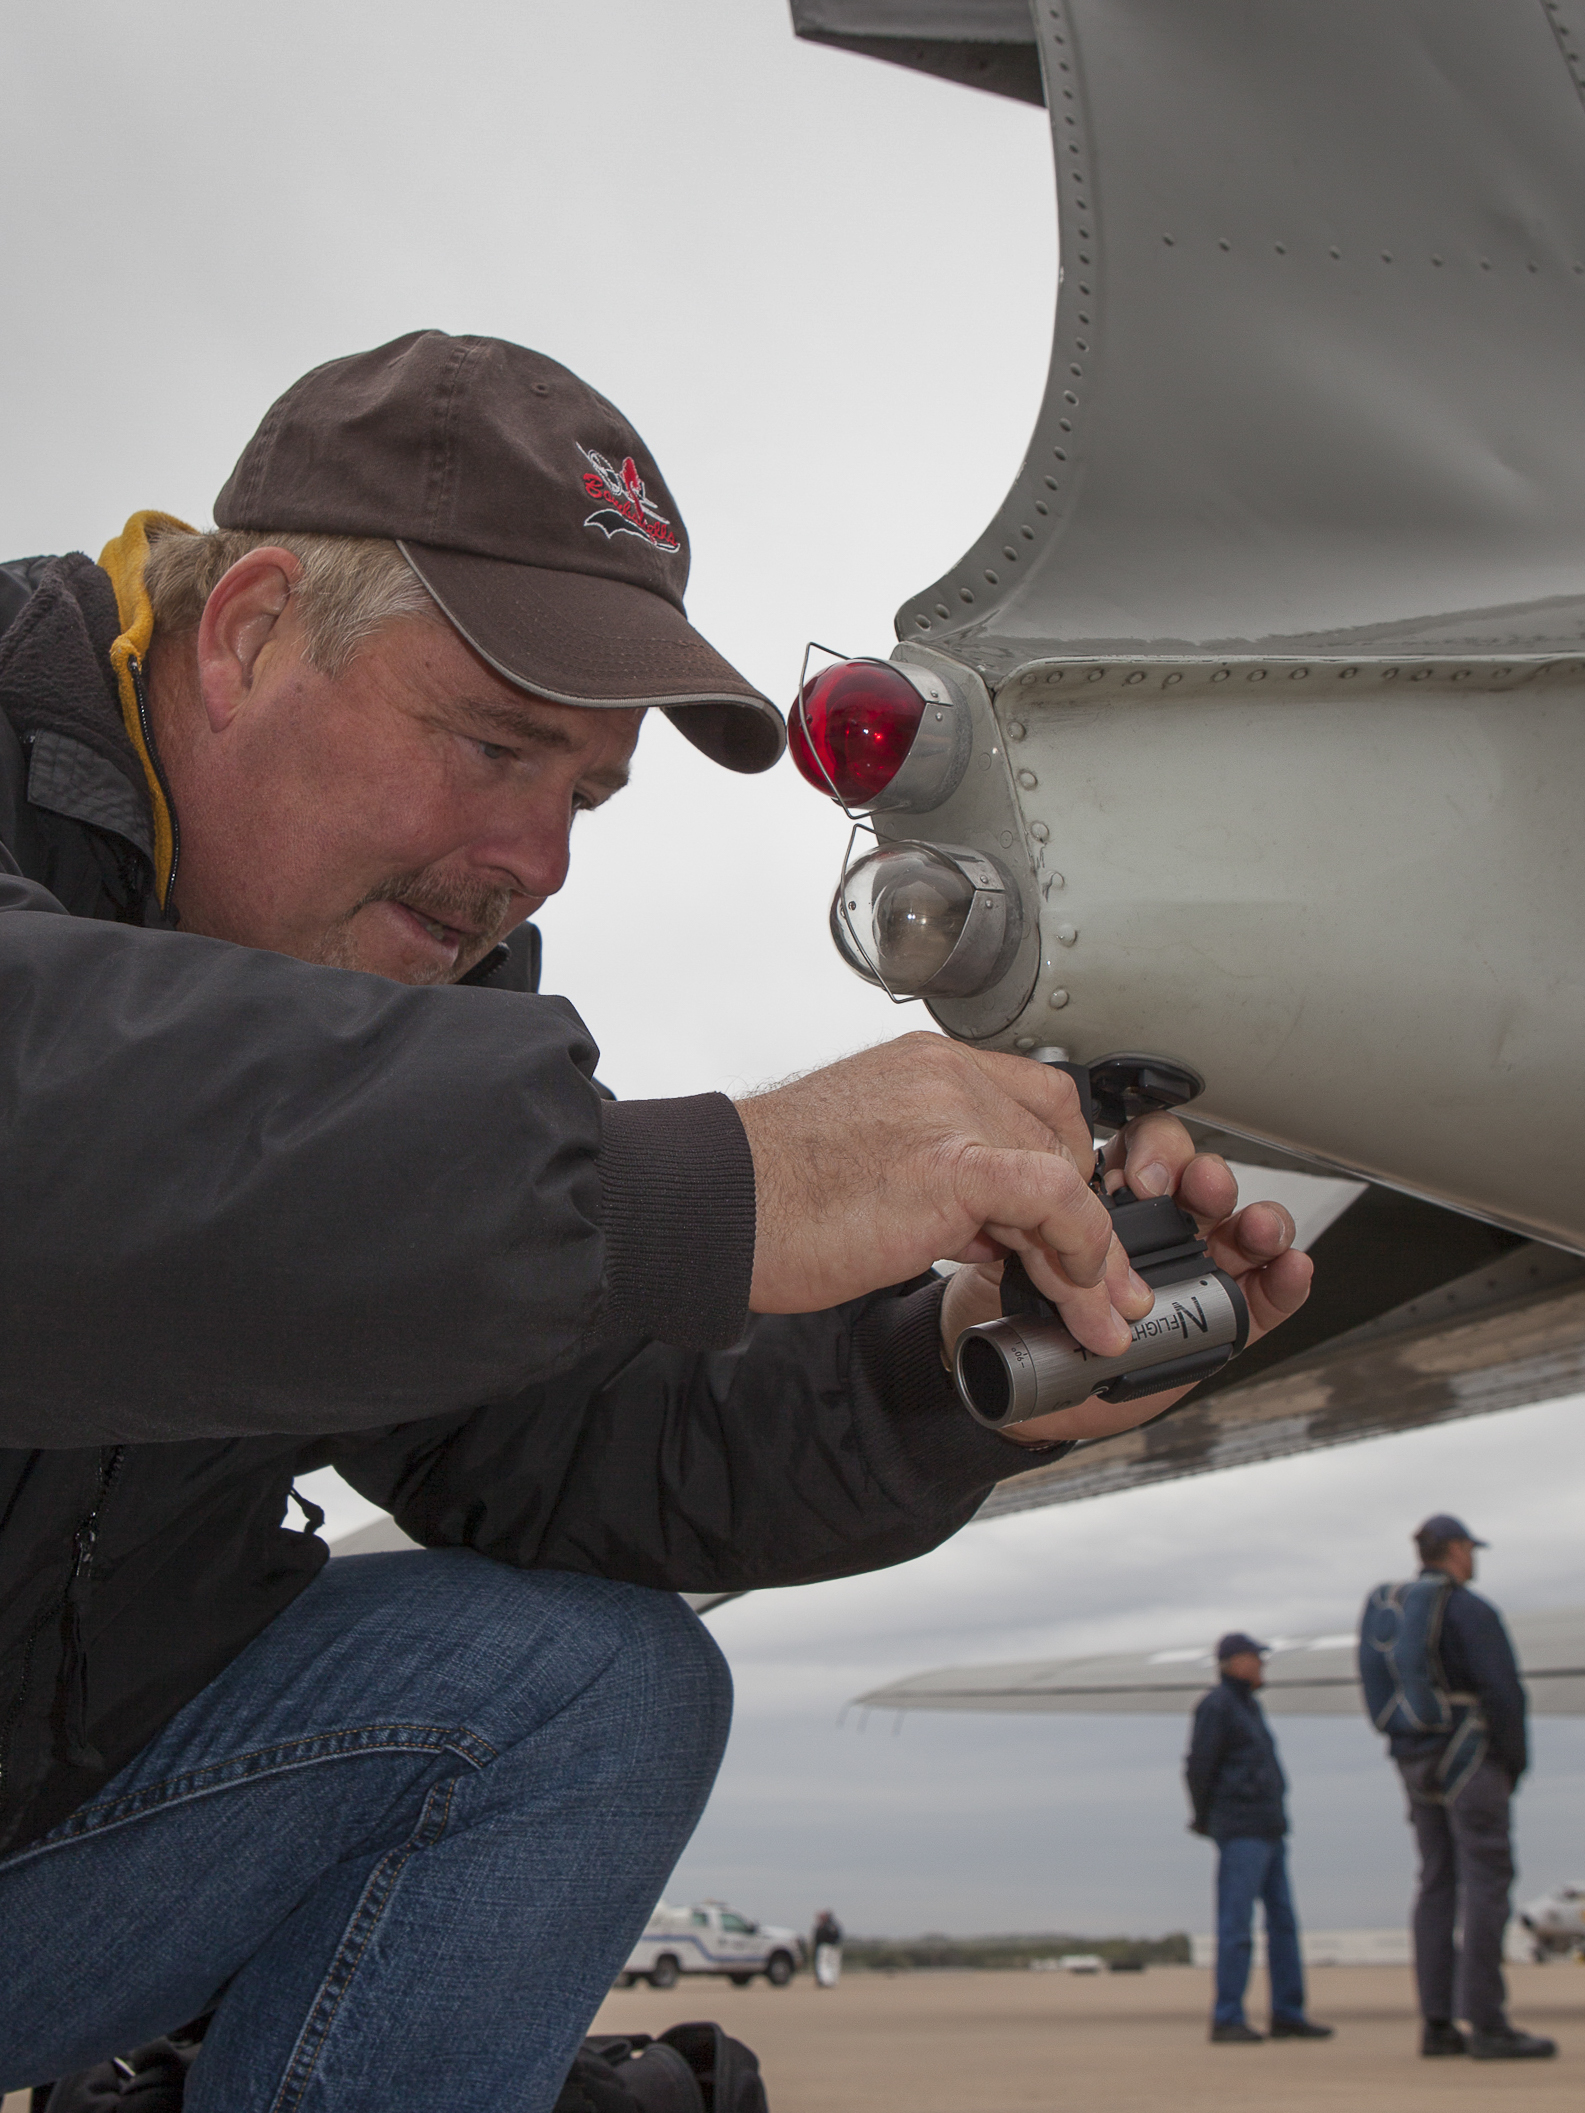 Alliance Air Show field tech attaches video camera for parachute team. Copyright © Kipp Baker, All rights reserved.